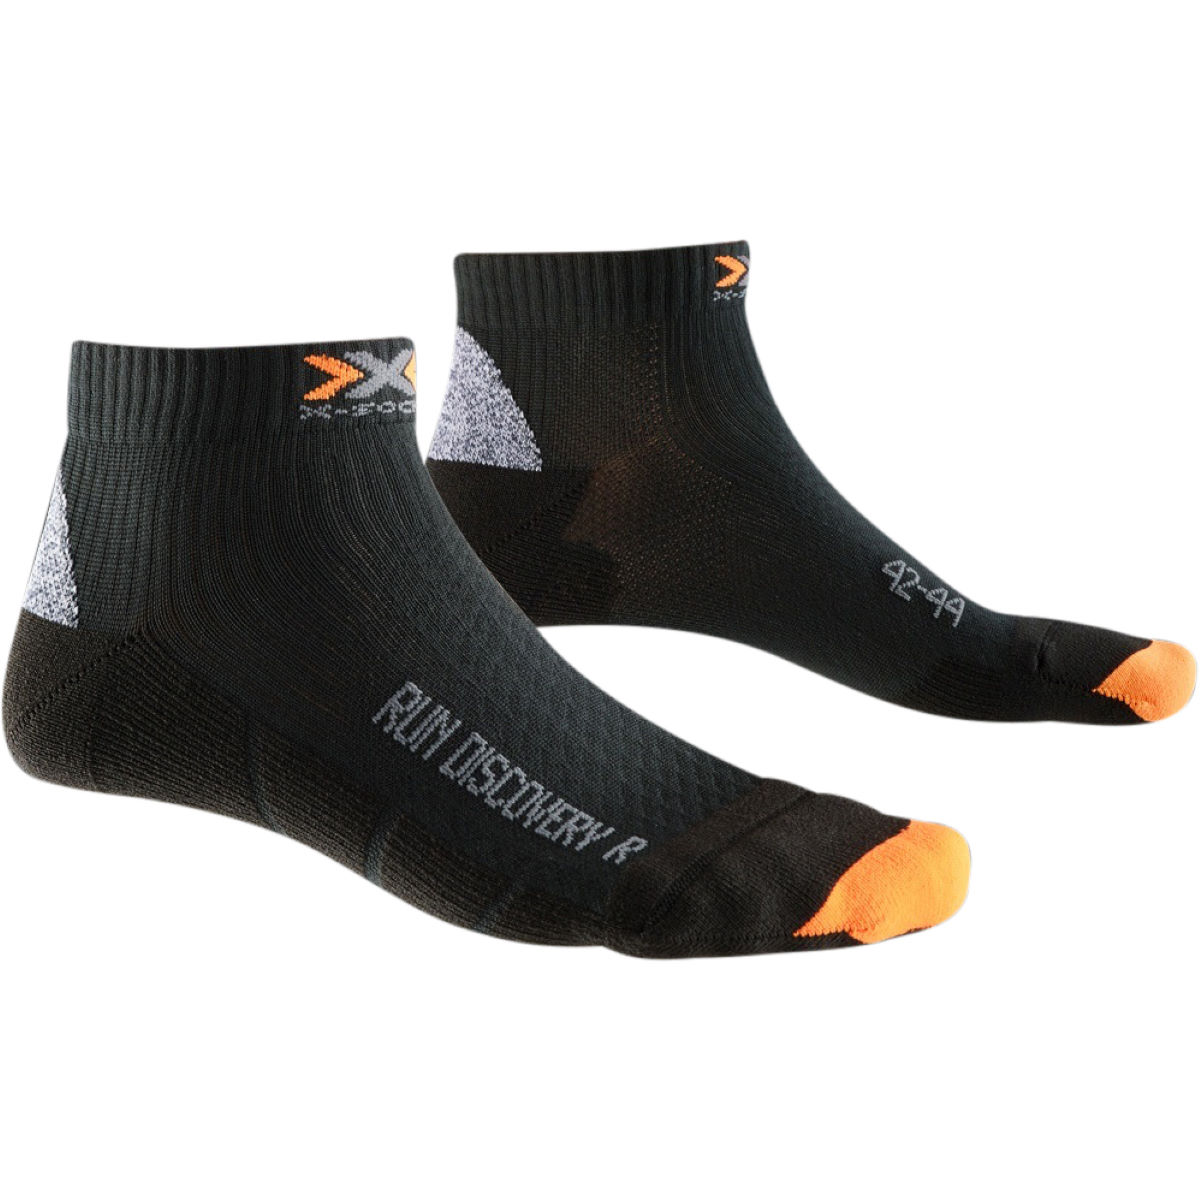 Calcetines X-Socks Run Discovery - Calcetines